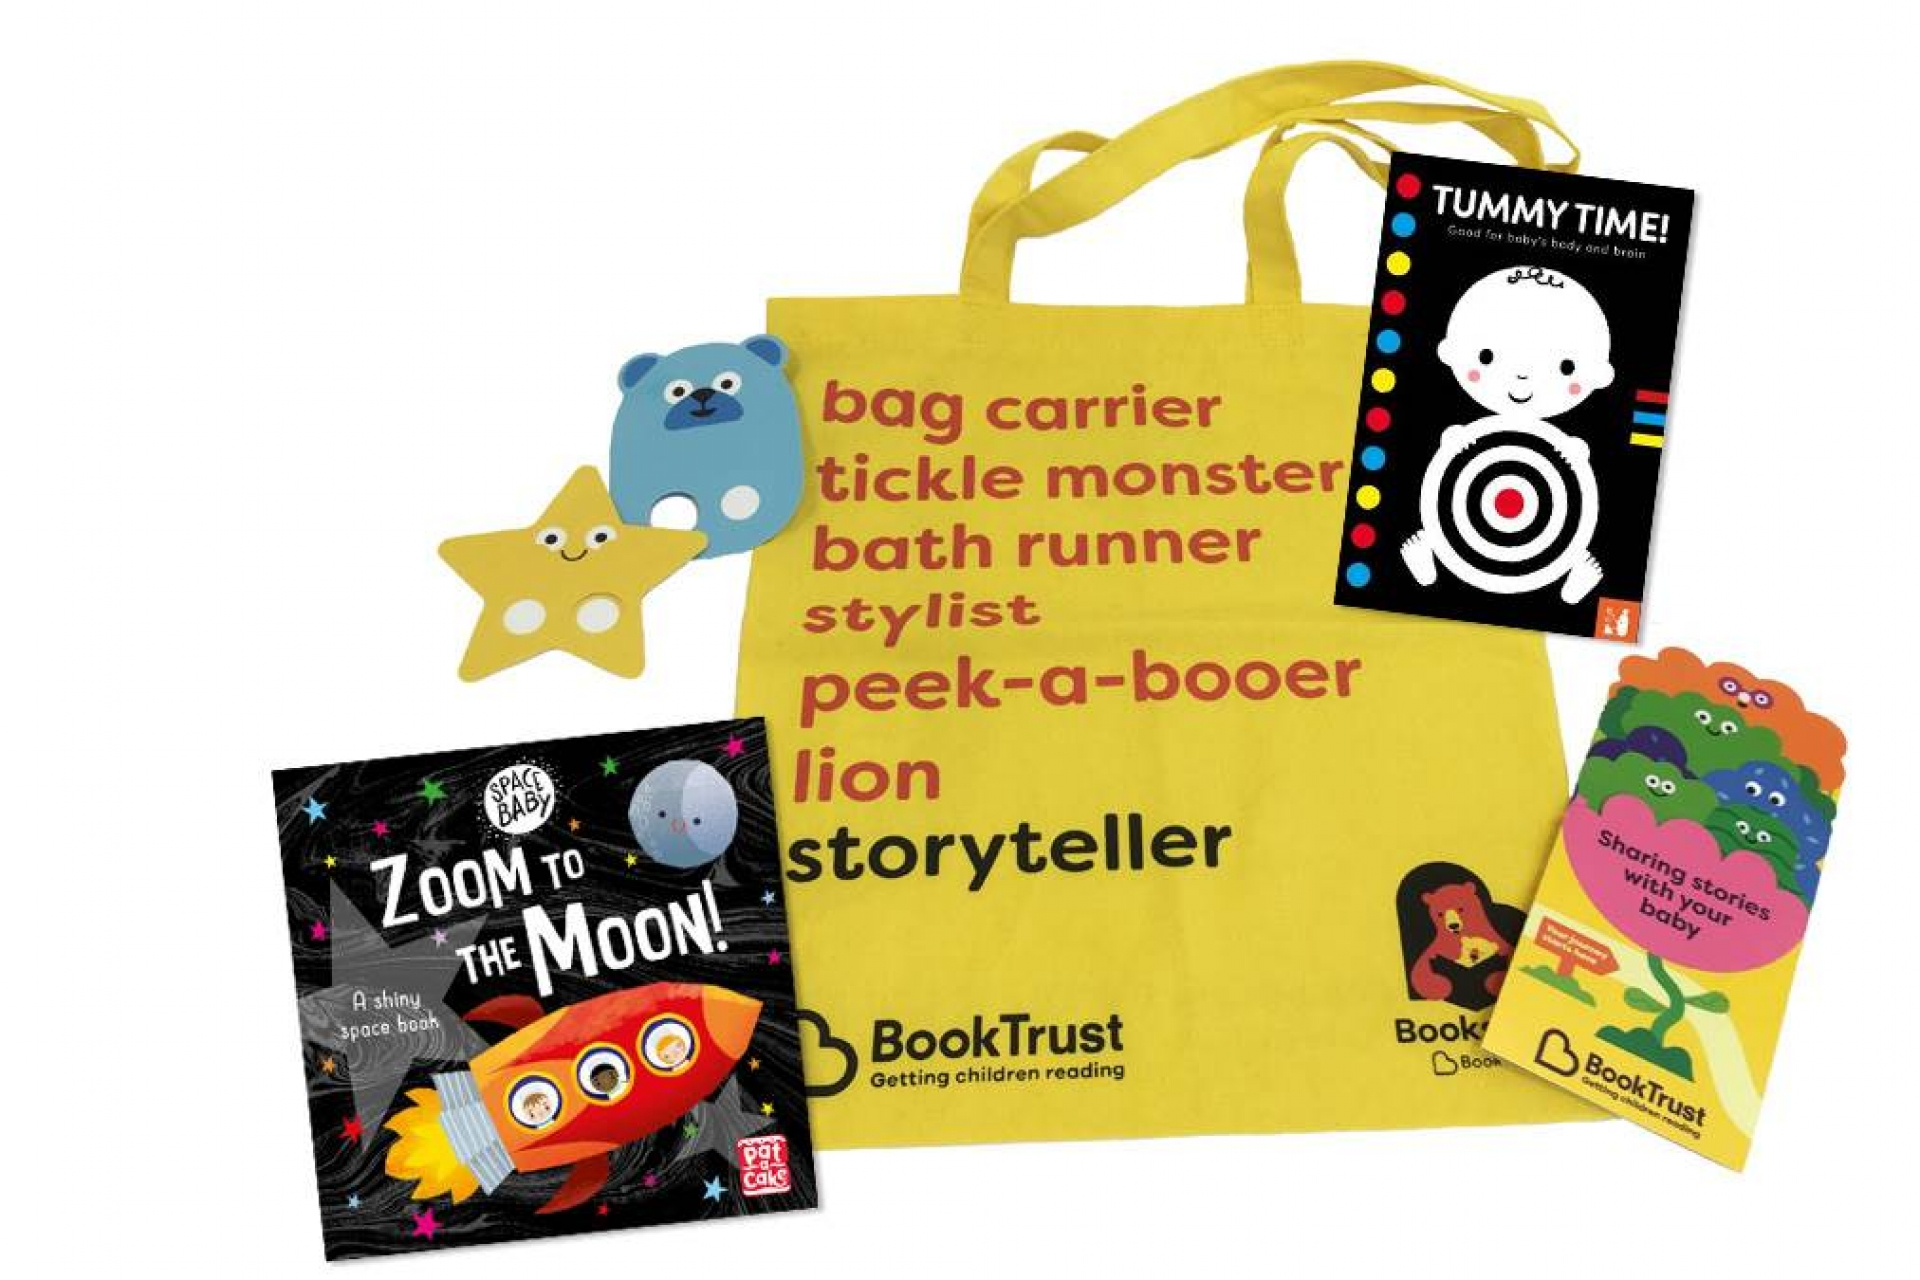 BookTrust reveals two new titles for the Bookstart Baby bag